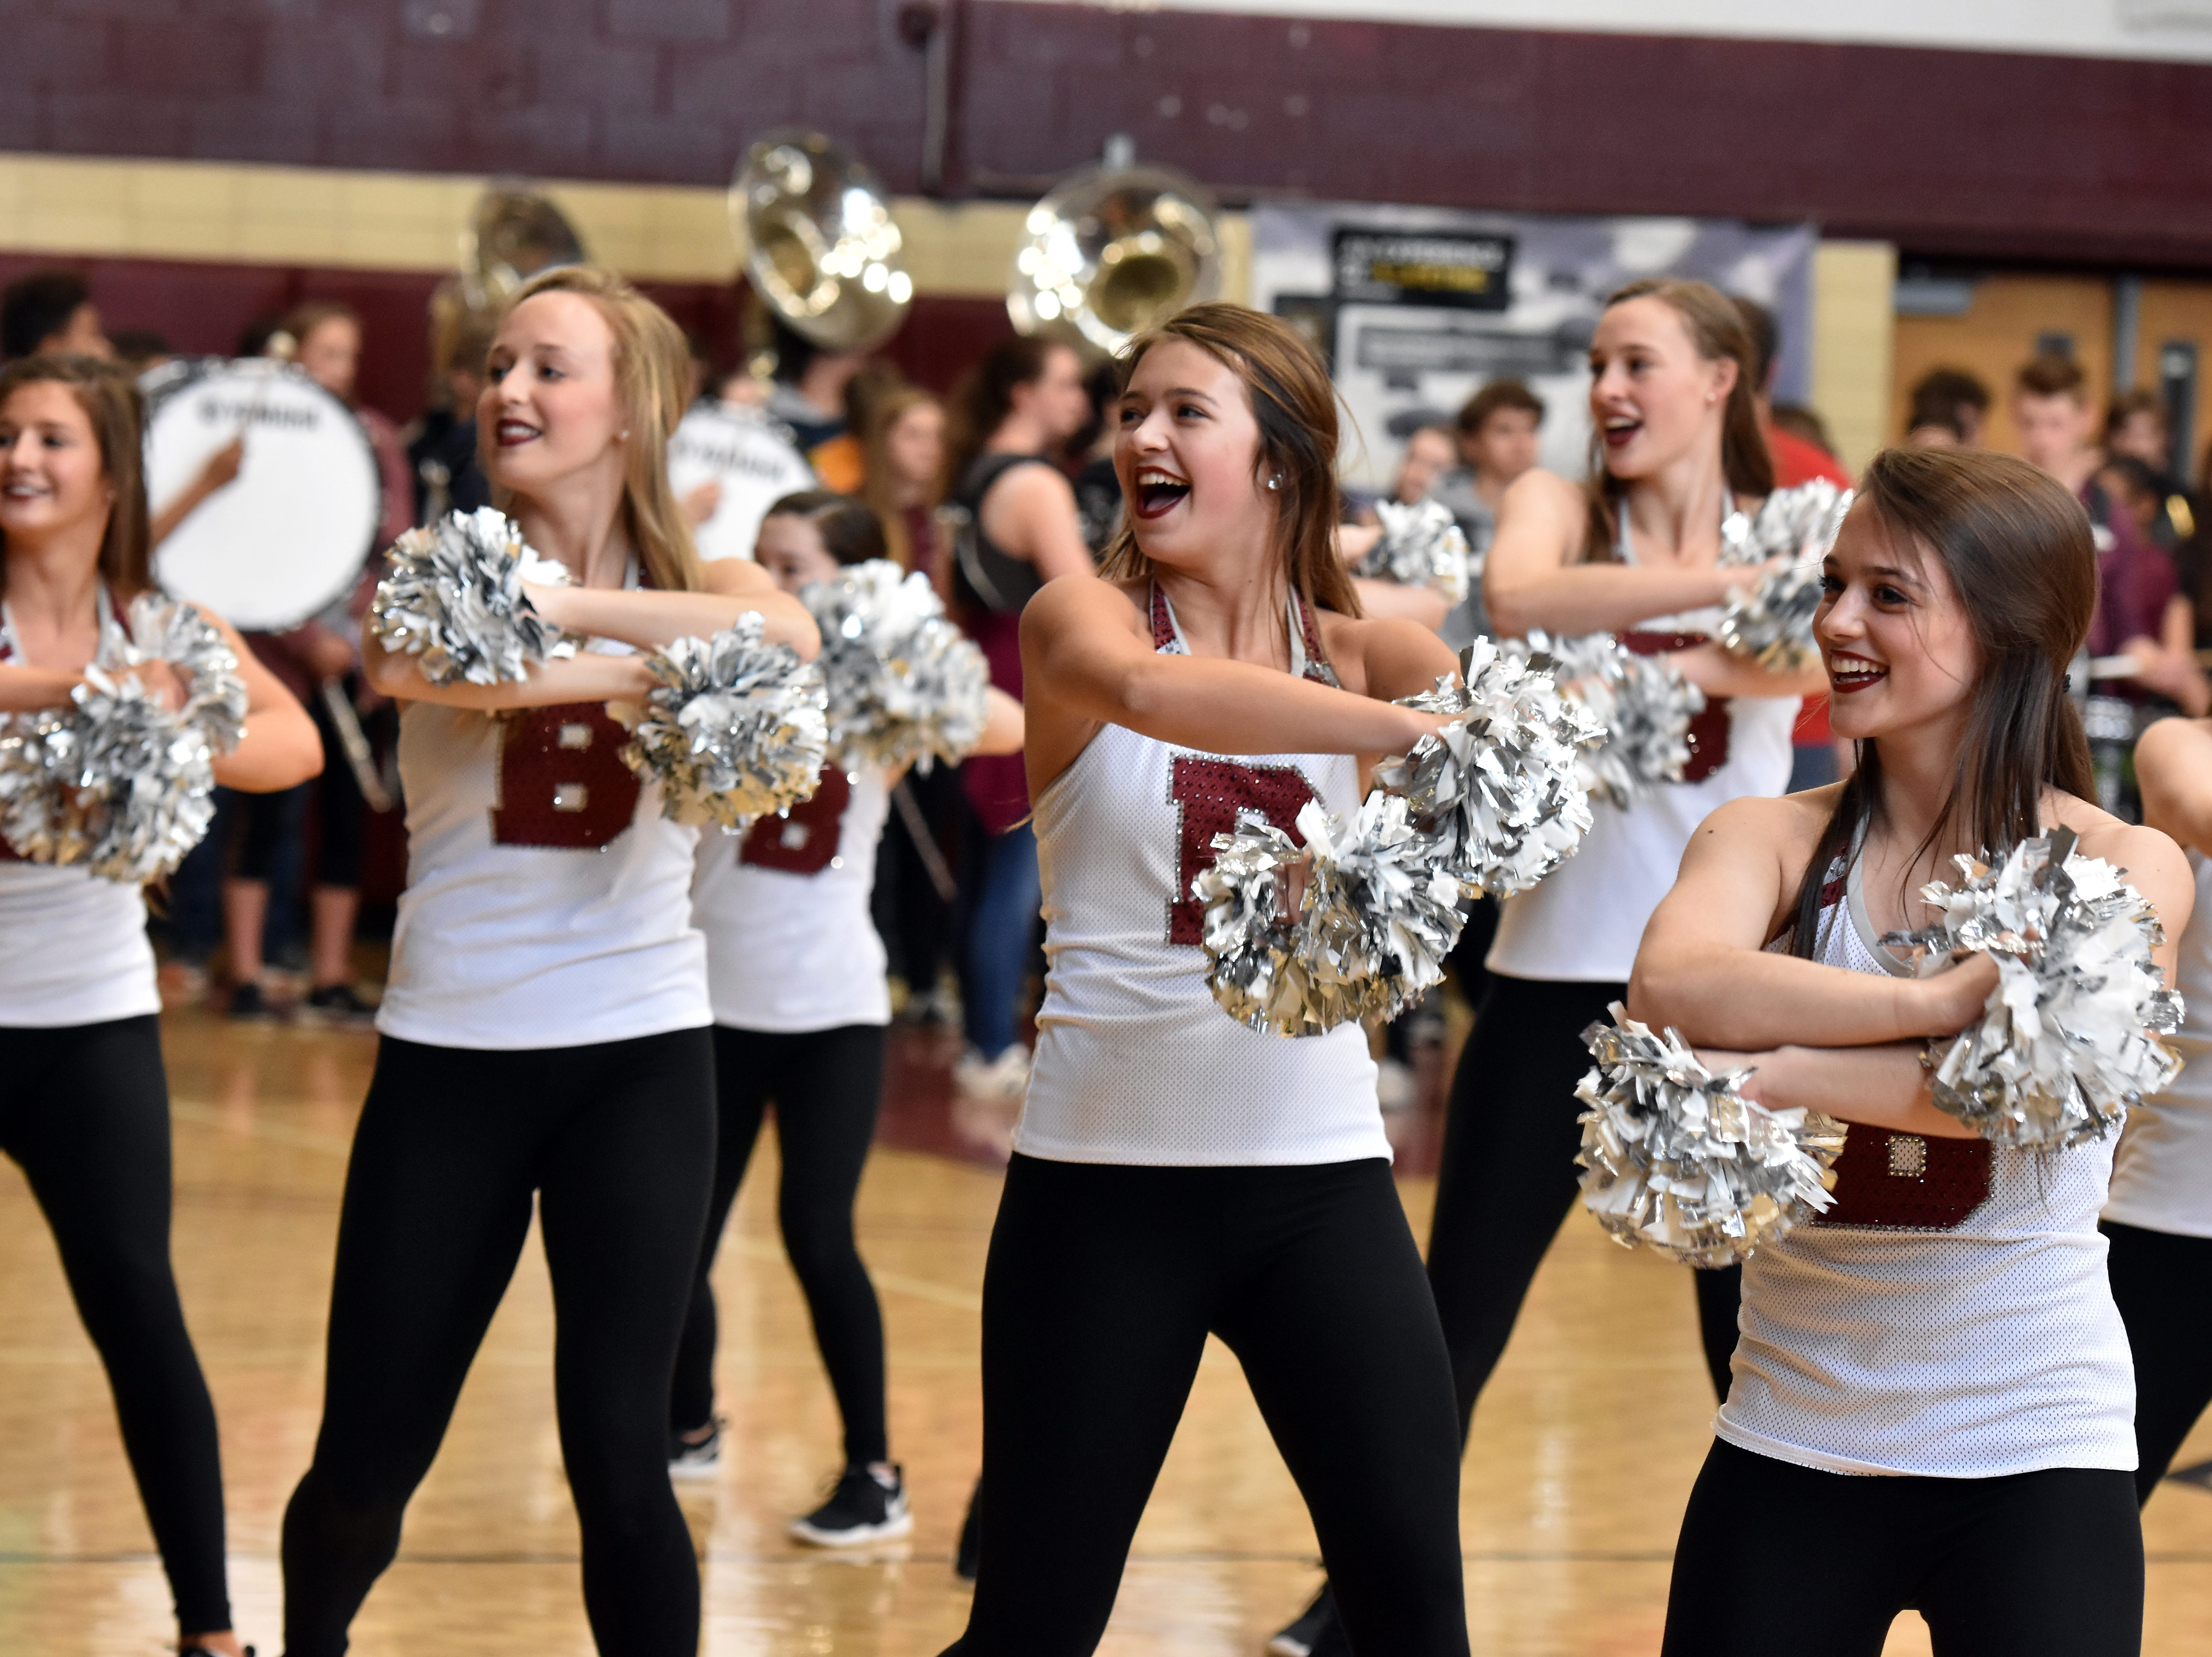 The Bearden High dance team performs a sideline routine during the pep rally on March 29 to honor the state championship basketball team.